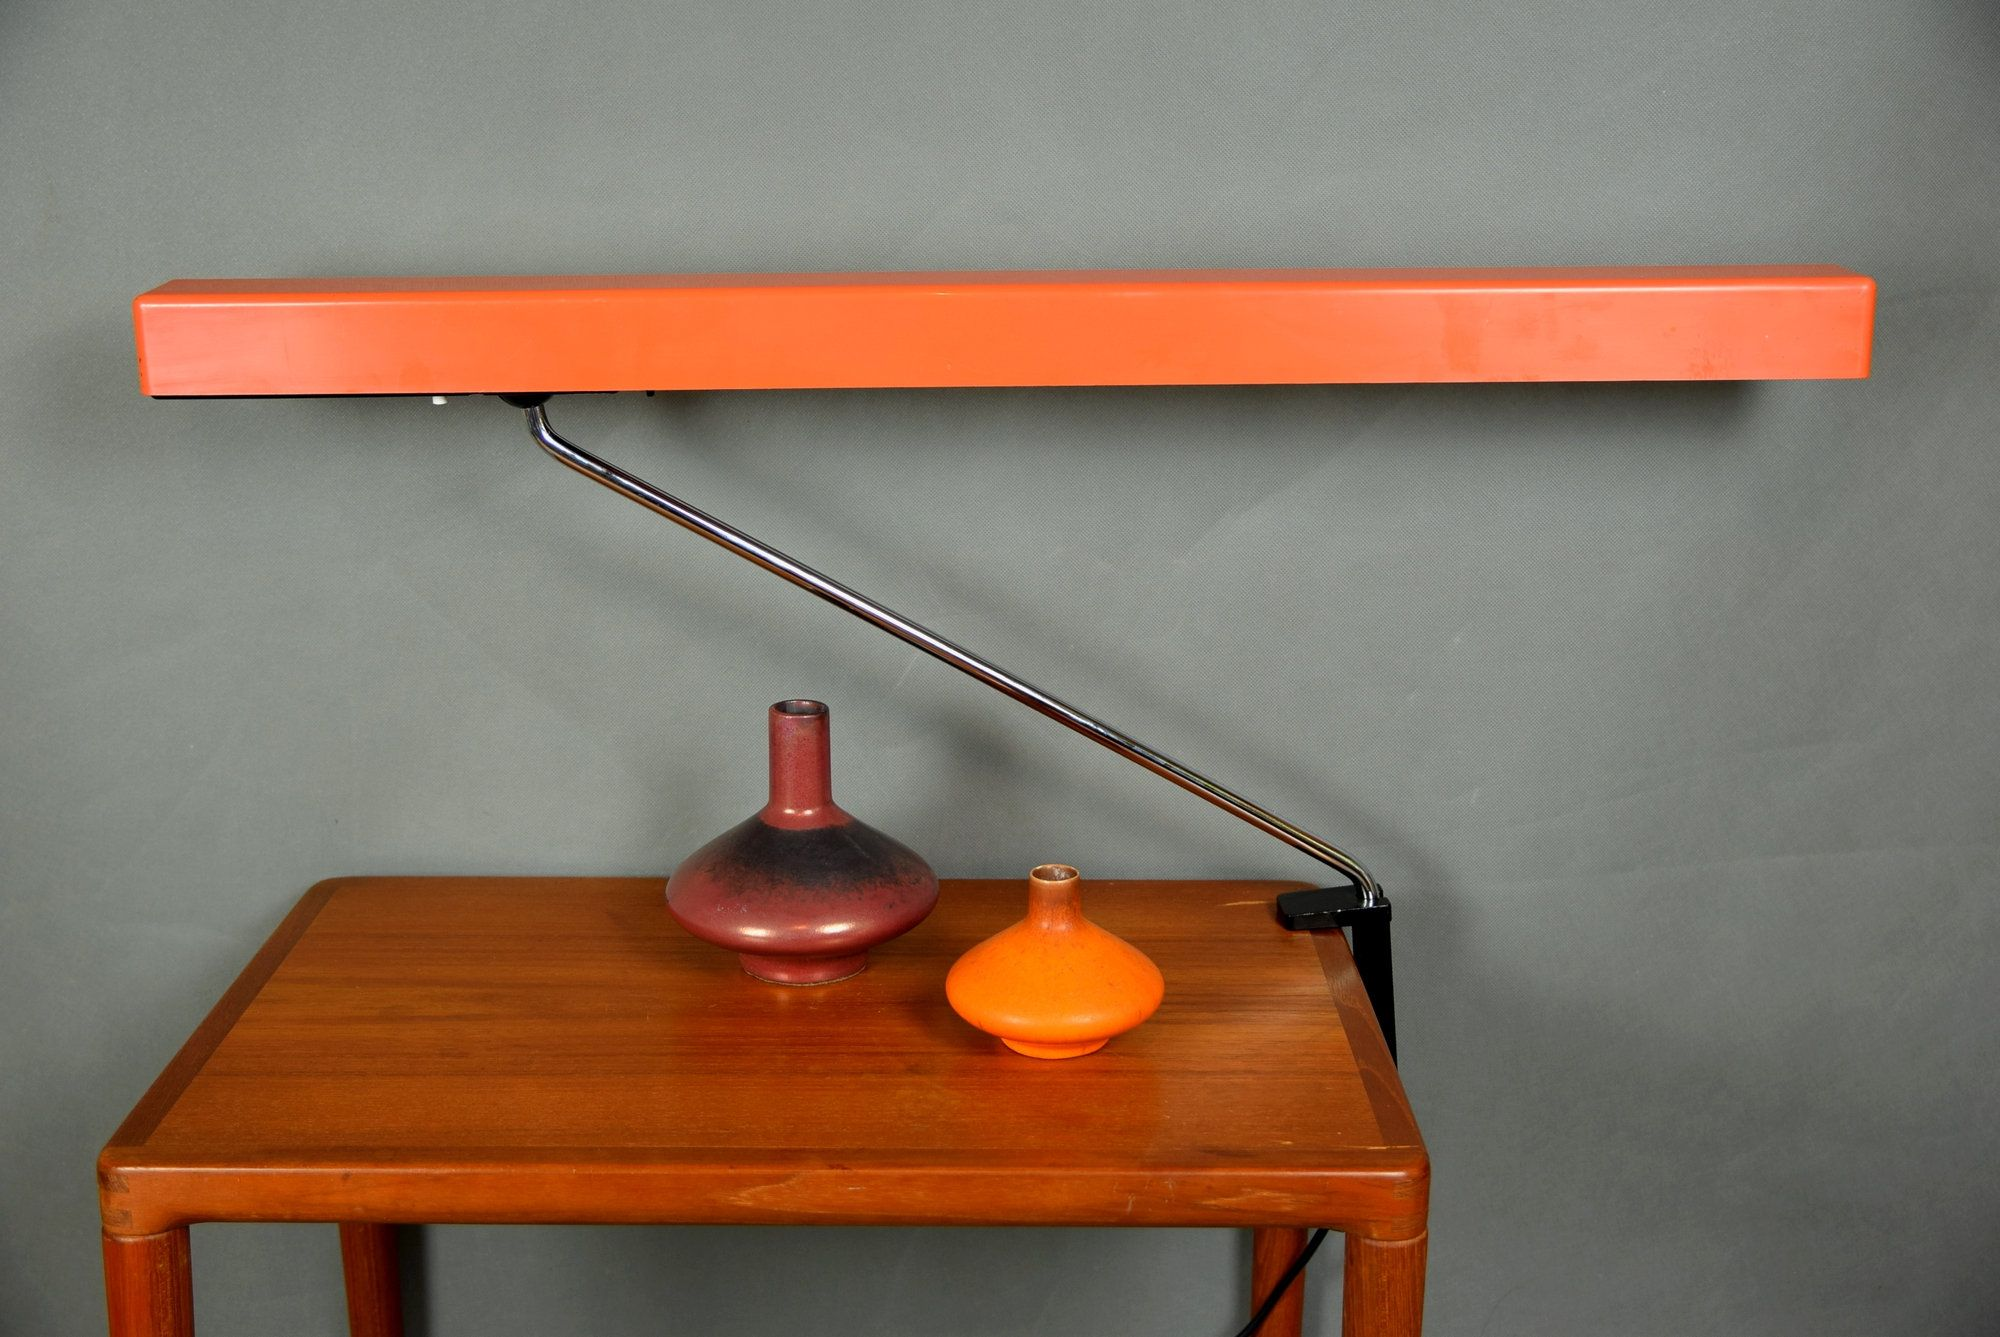 Rare German Architec Lamp Functional Clamp On Lamp Desk Lamp Adjustable Arm Light Orange Space Age 70s Schreibtischlampe Klemmlampe Lampe